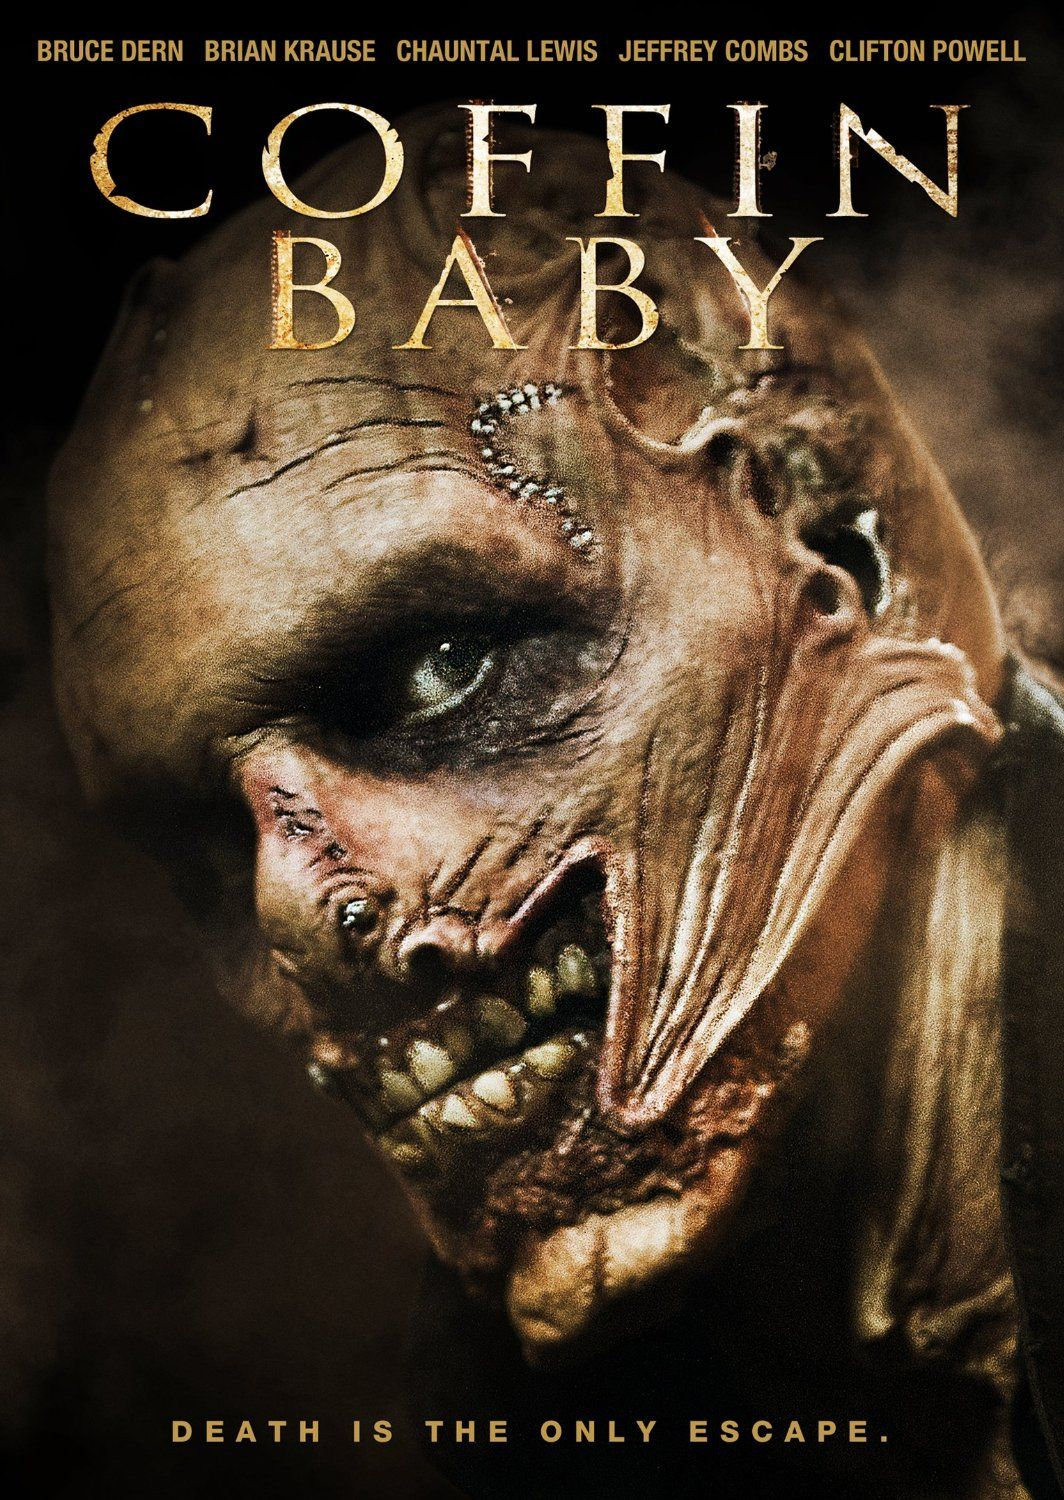 Coffin Baby 2013 Movie Review | Movie Posters | Pinterest ...